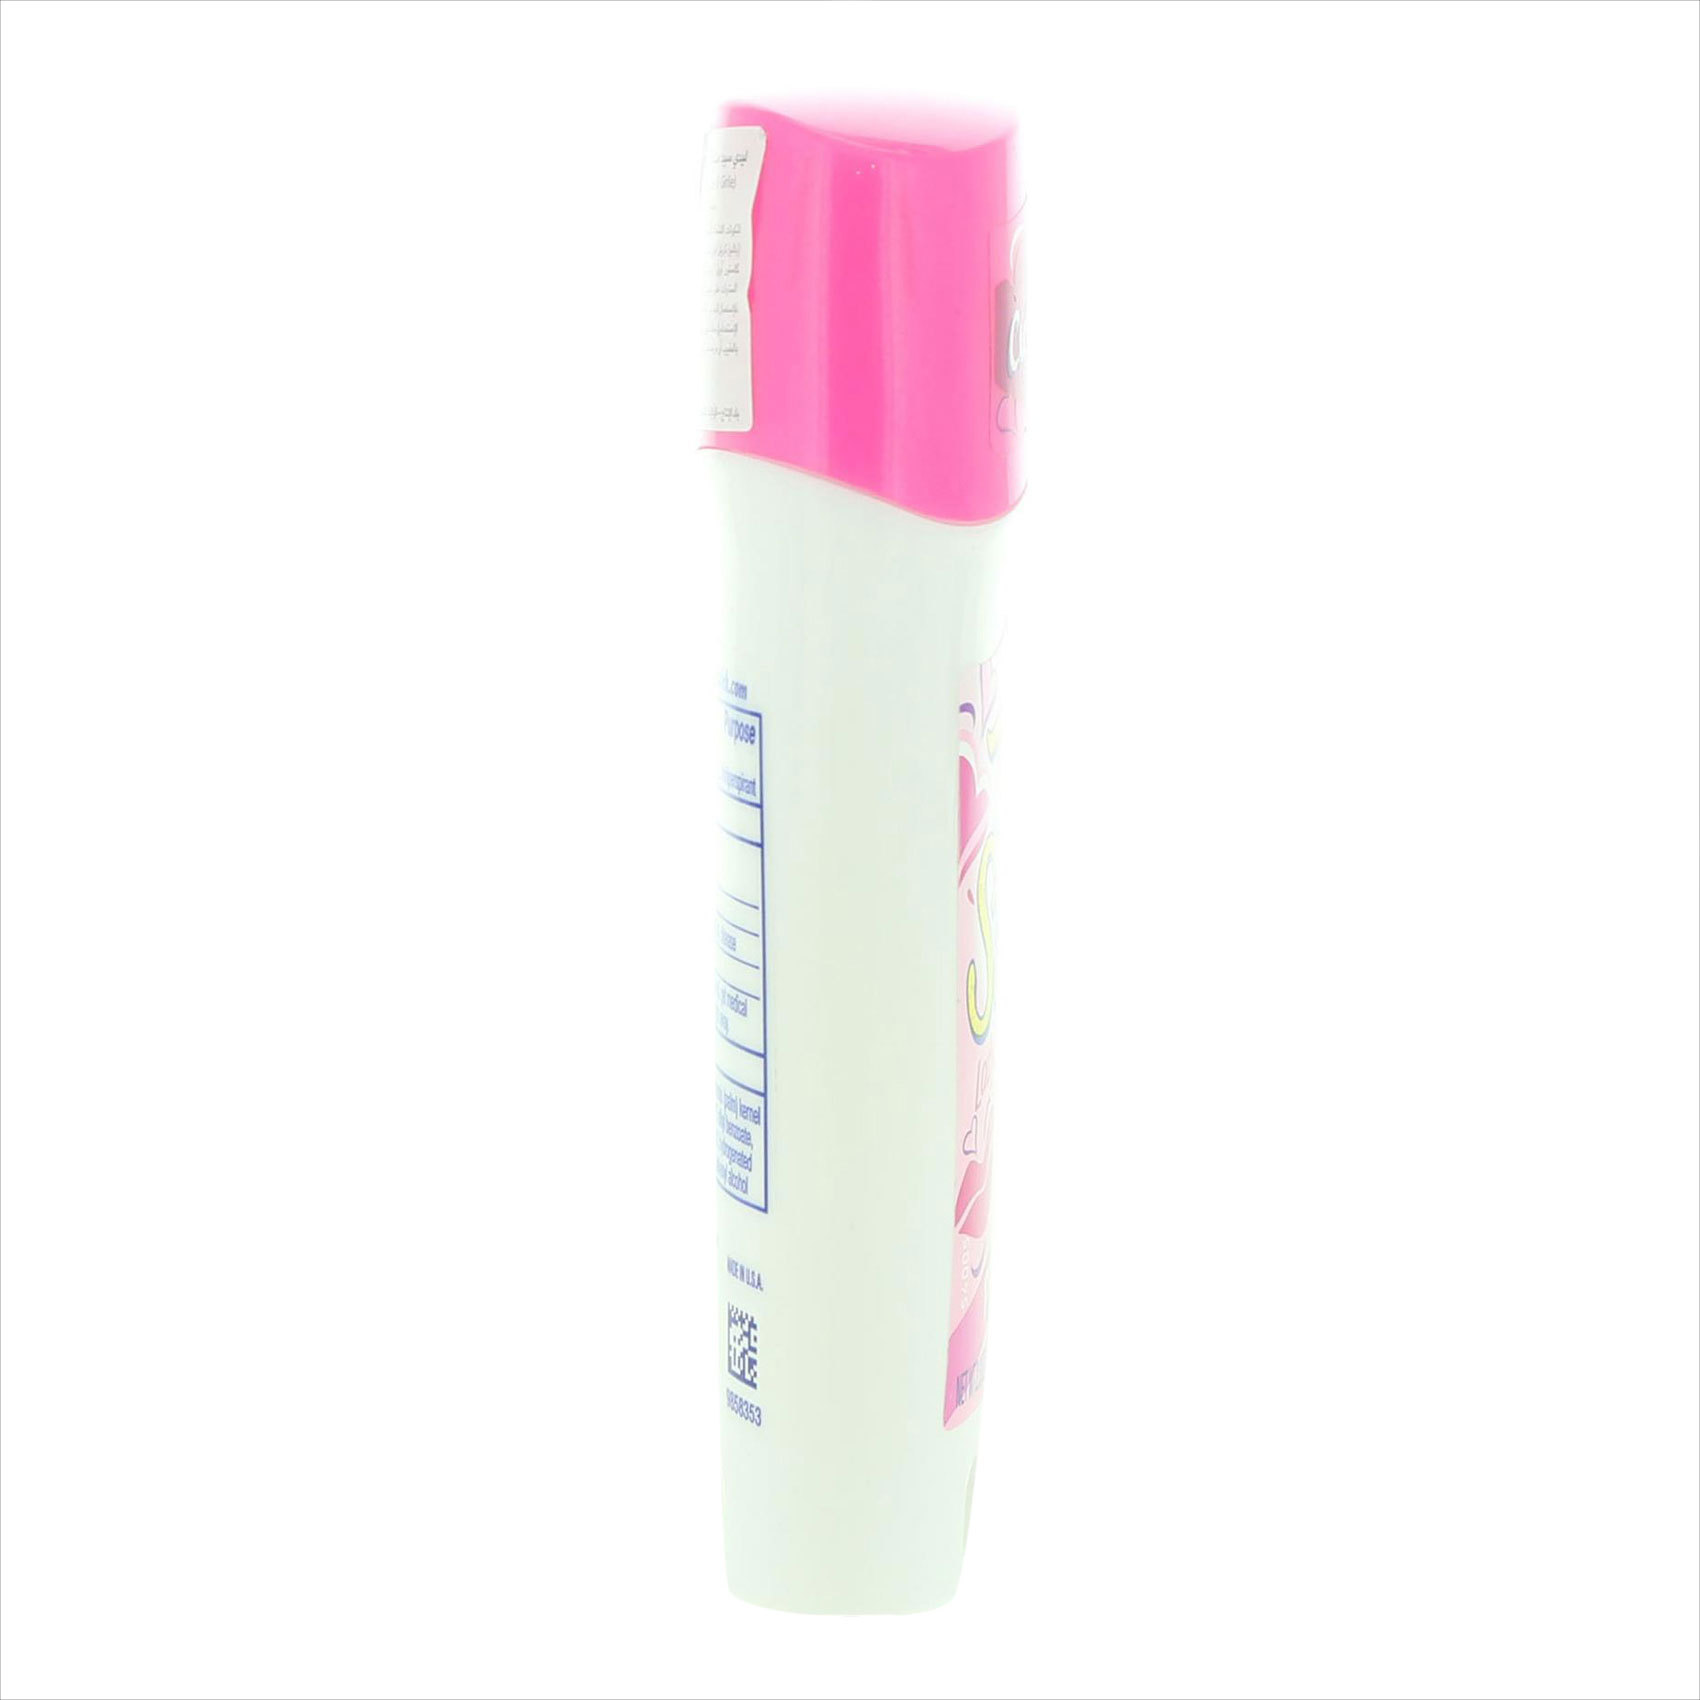 LADY SPEED STICK TEEN SPIRIT PINK